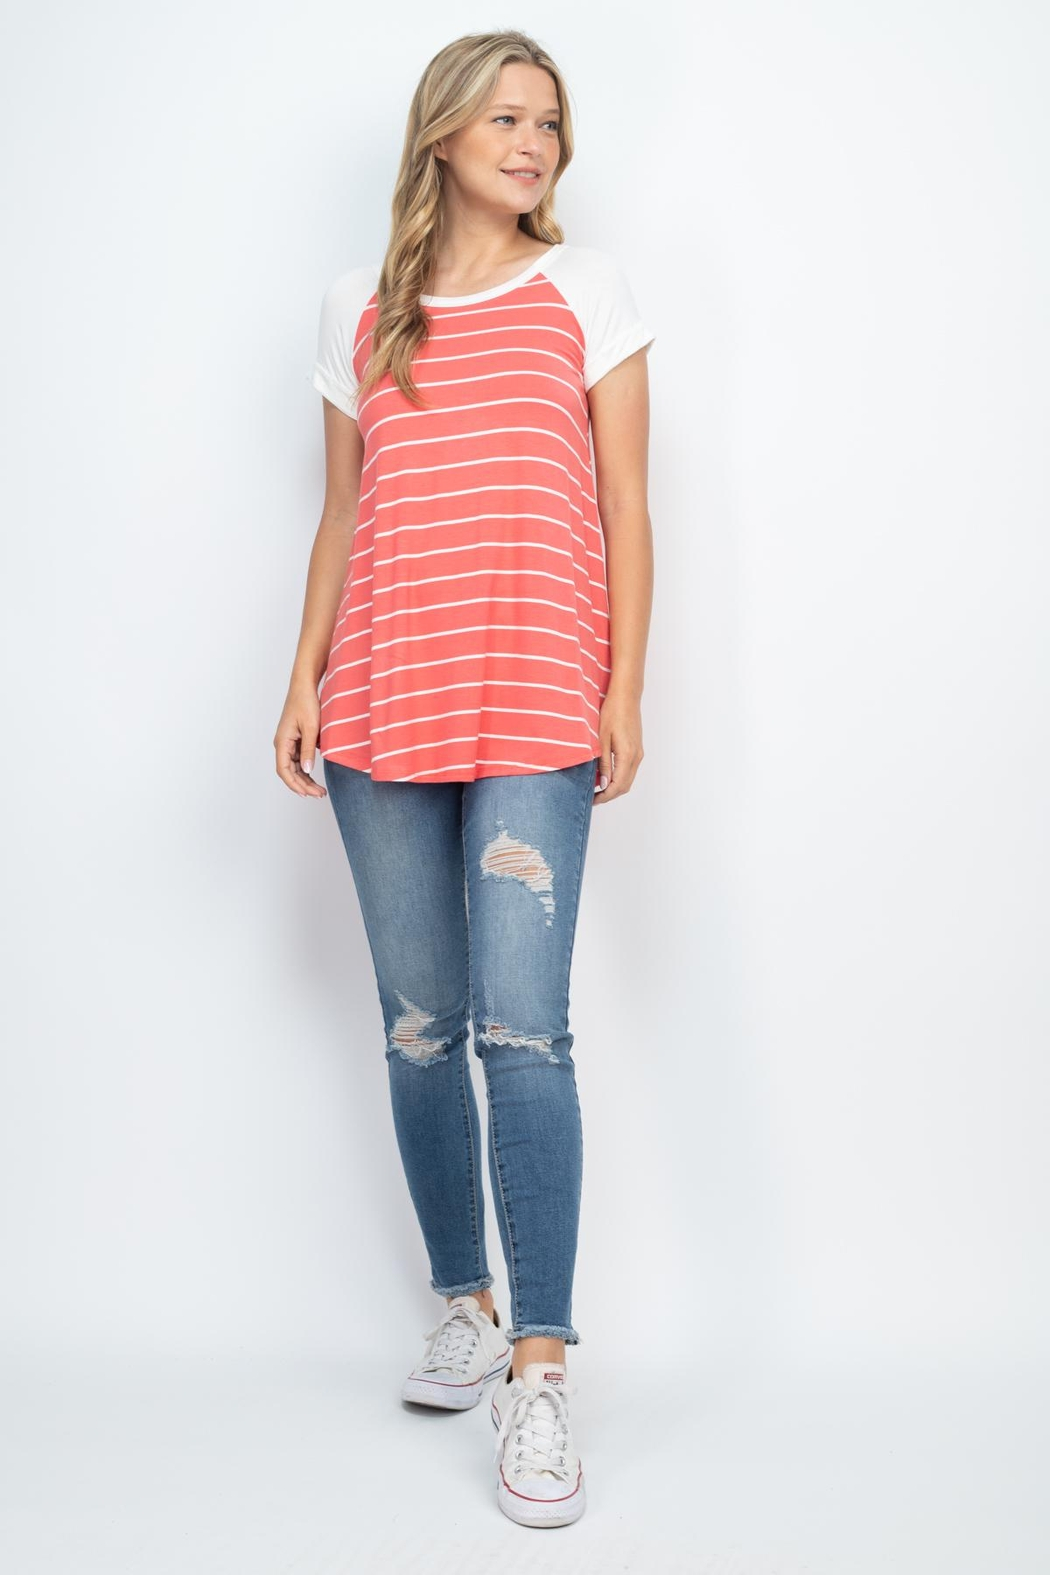 Riah Fashion Coral Stripes Top - Side Cropped Image